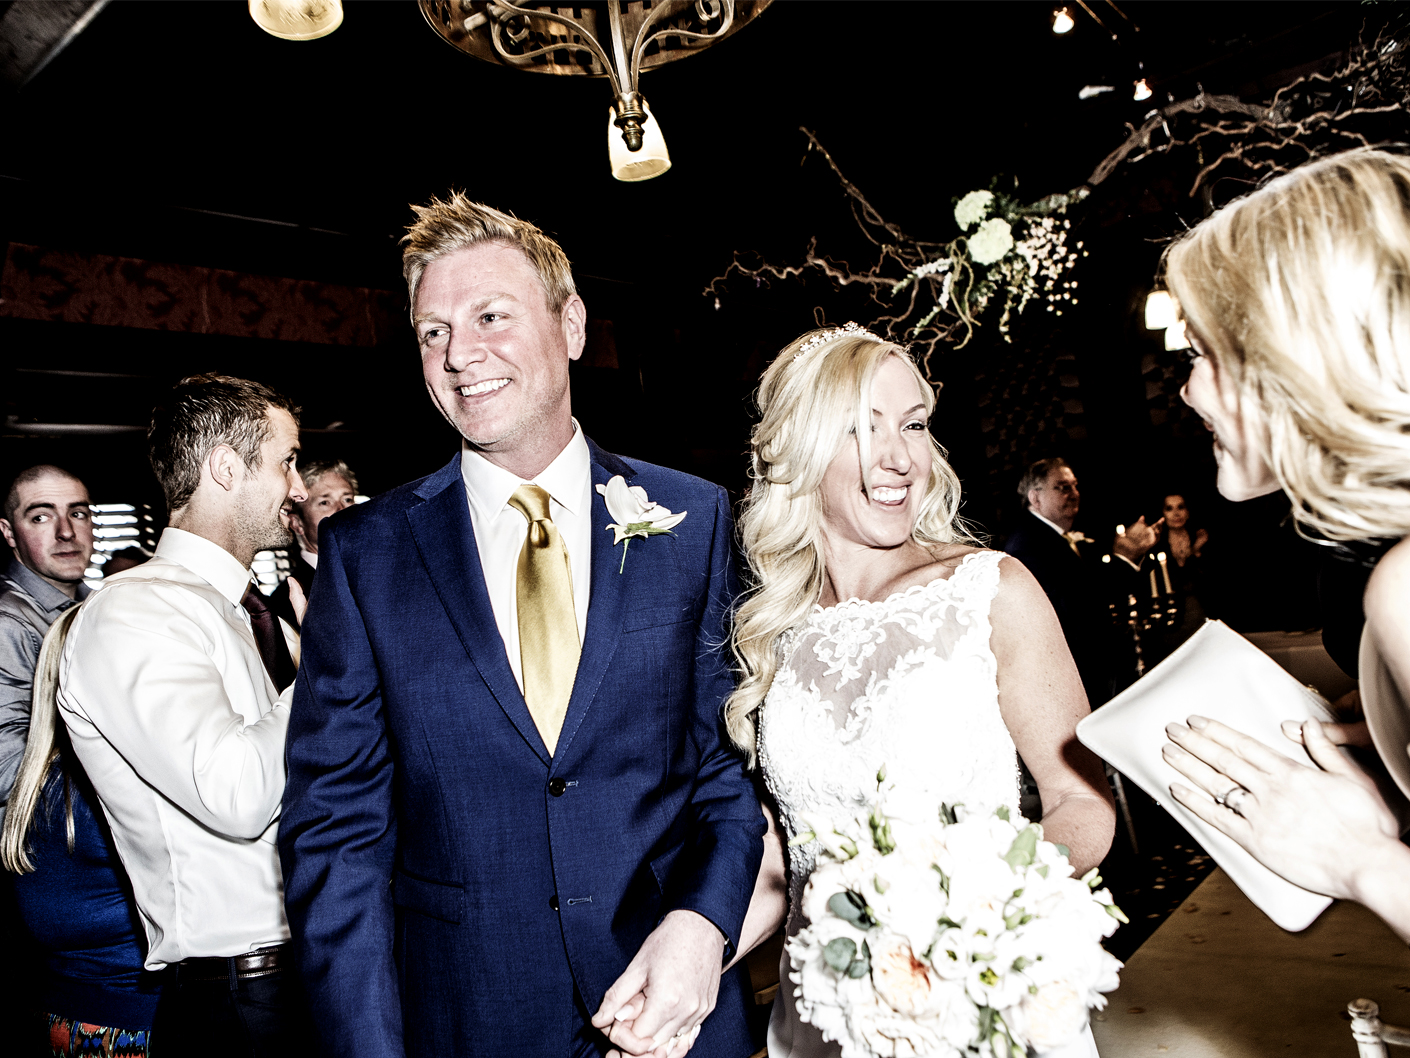 wedding-photography-at-the-civil-ceremony-at-belle-epoque-knutsford-cheshire